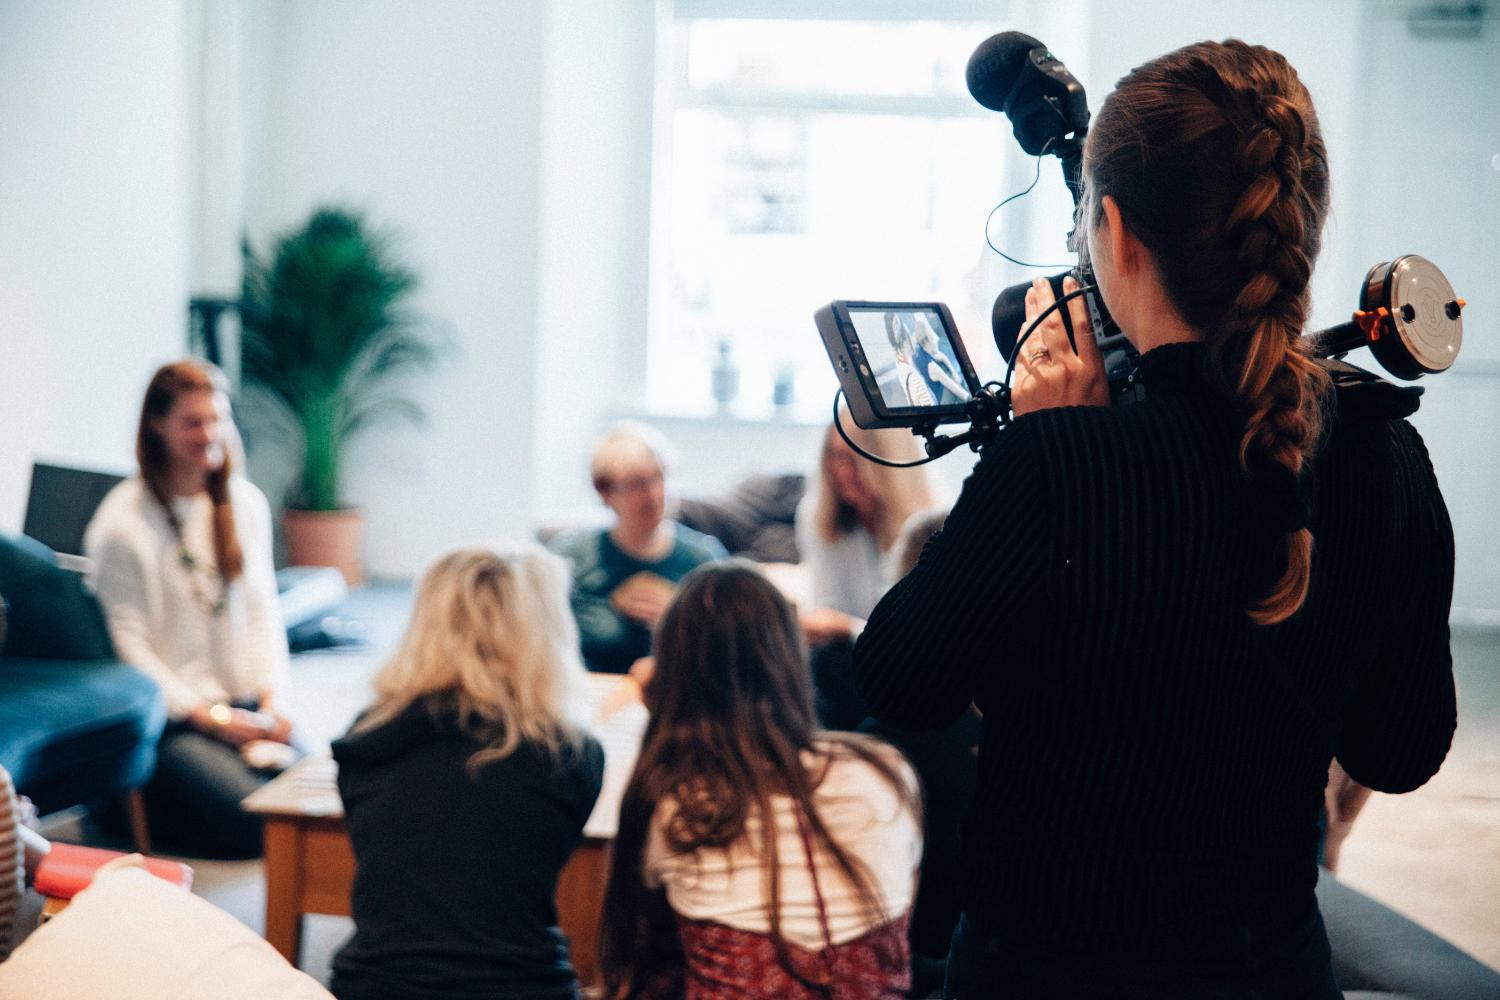 lady filming a class using video camera